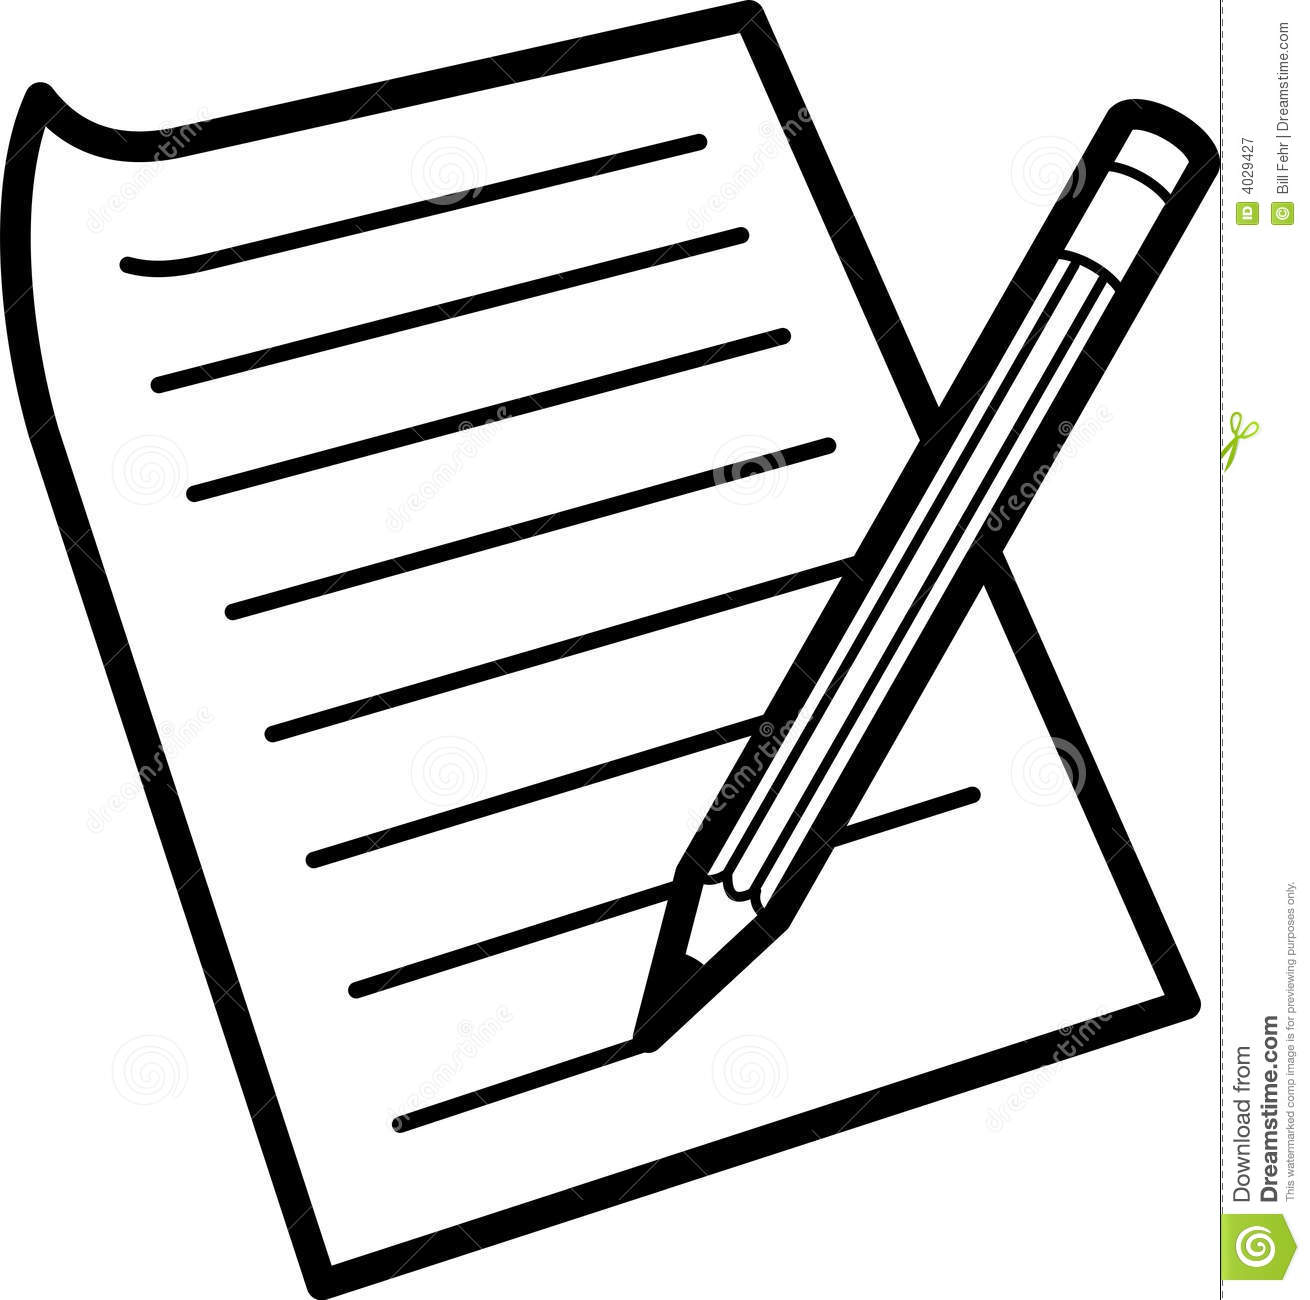 Free Writing On Paper Clipart, Download Free Clip Art, Free.